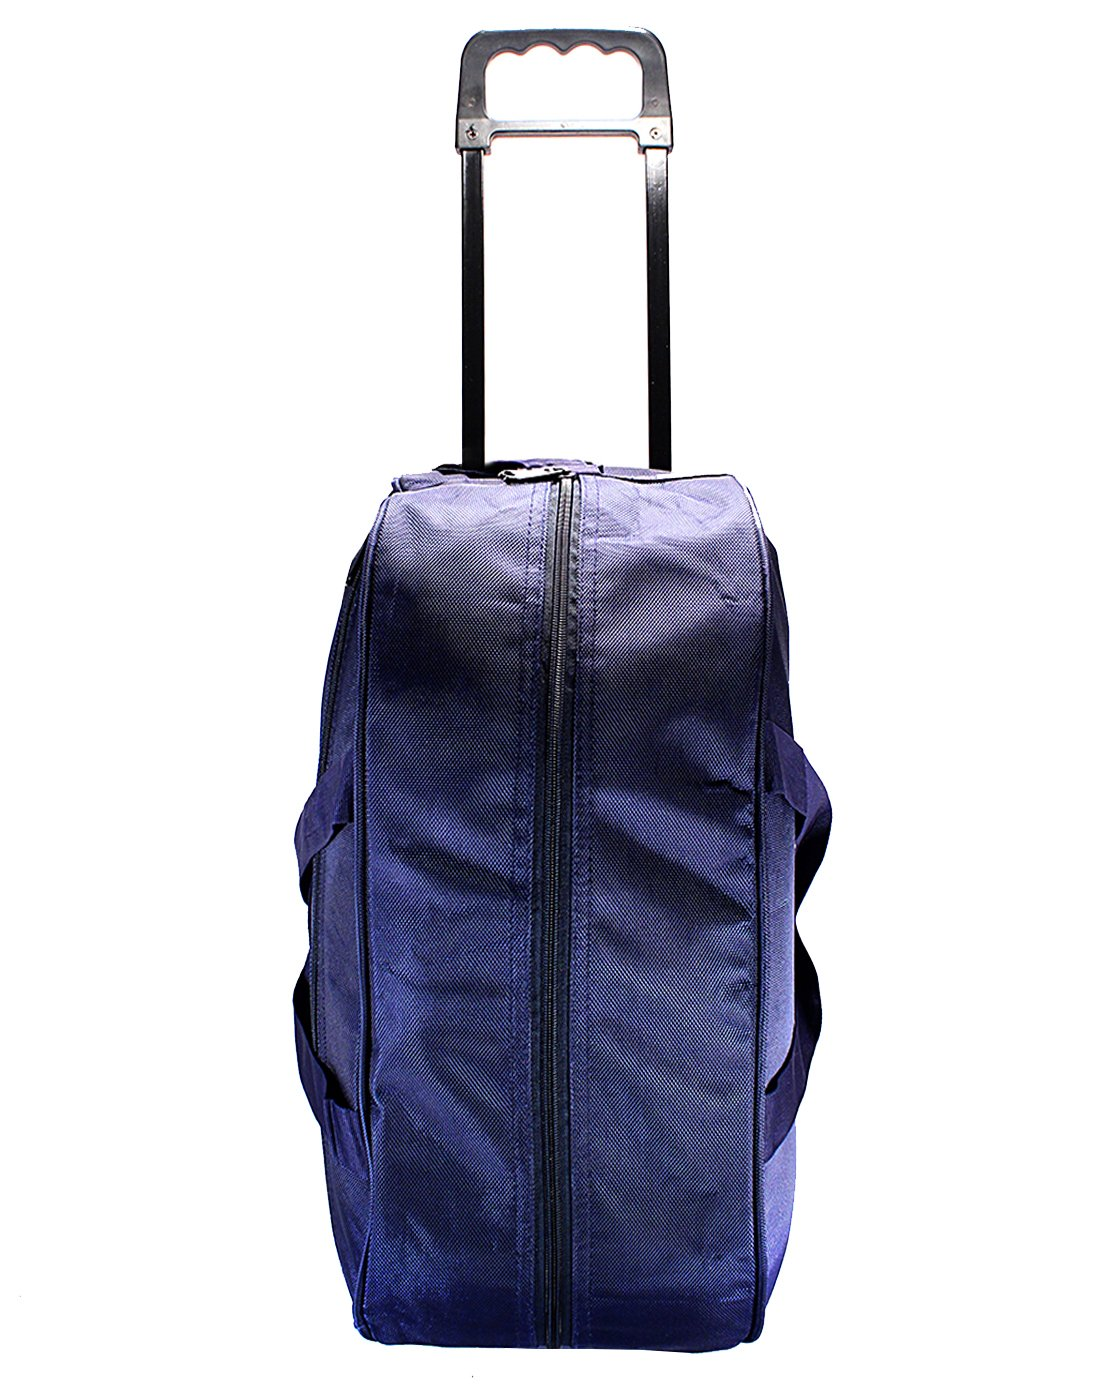 3G Blue Polyester Trolley